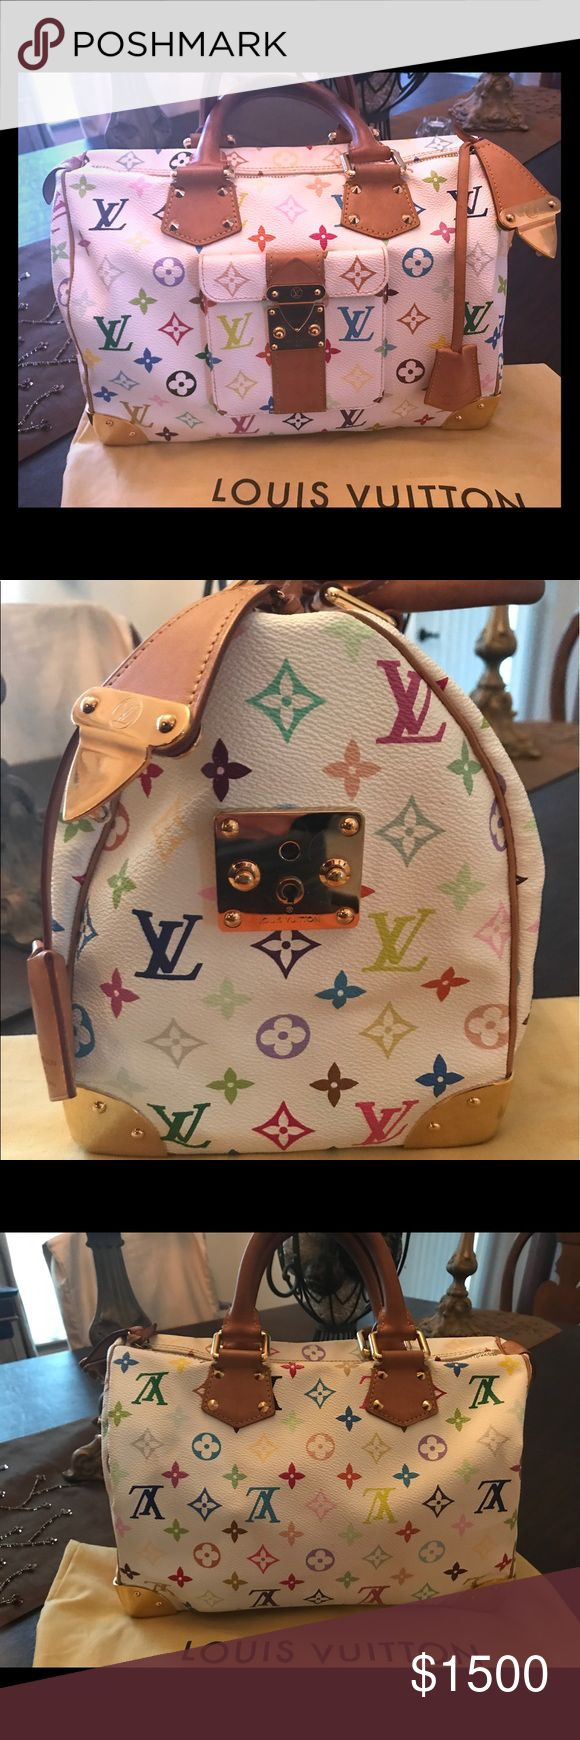 Louis Vuitton Speedy 30 Murakami Handbag M92643 Selling a Louis Vuitton Speedy 30 Murakami Monogram Multicolor Canvas handbag M92643...this luxurious authentic Louis Vuitton handbag is pre-owned in mint condition, rarely used, gift given from recently ex husband.  Retail price $3200.00...this handbag is now discontinued and no longer available from Louis Vuitton...comes with original dust bag. Bags Totes